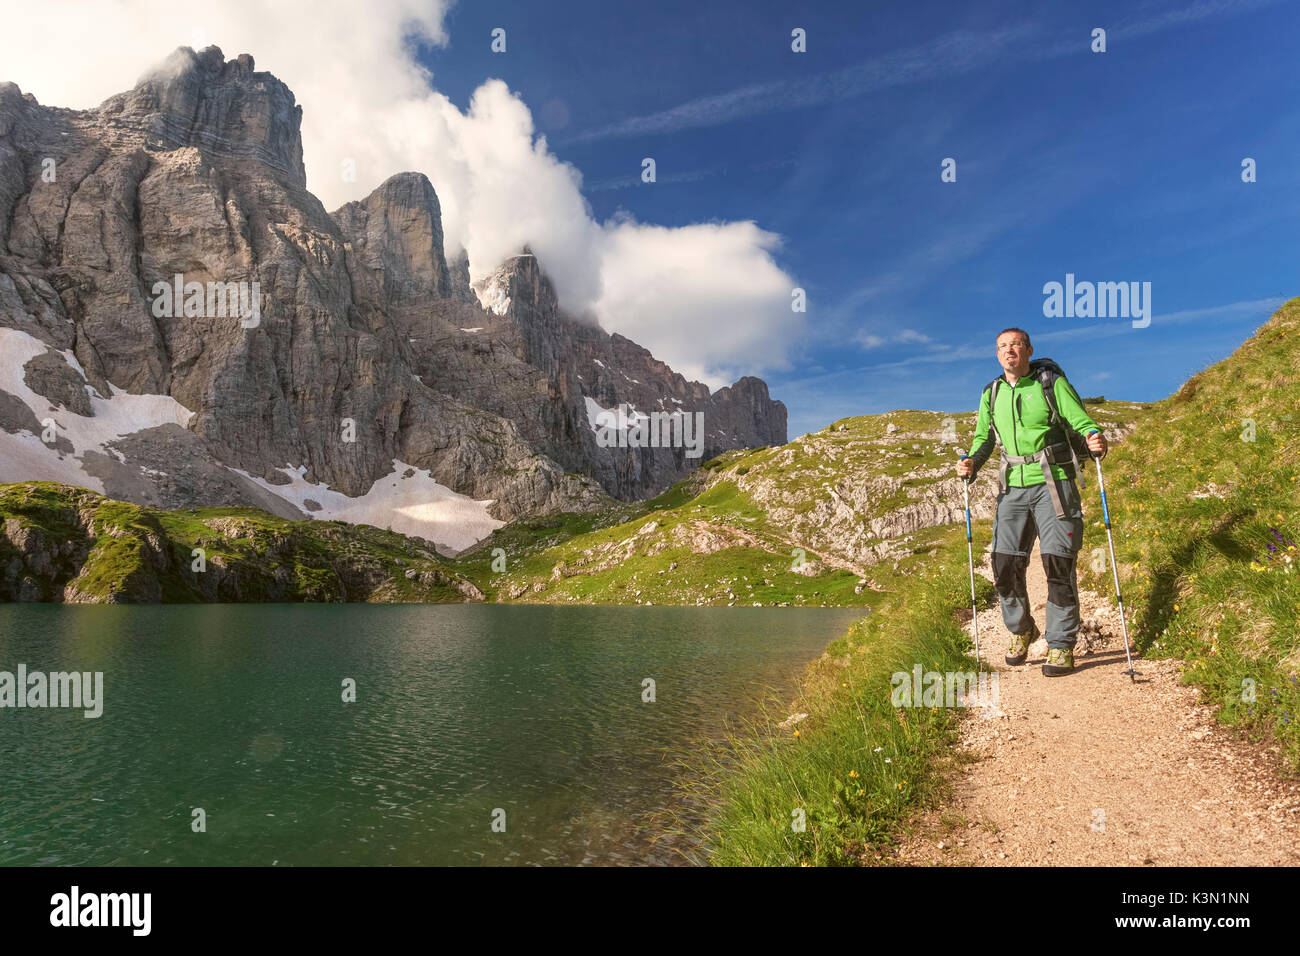 Europe, Italy, Veneto, Belluno. Hiker passes near Lake Coldai along the CAI 560, which at this point coincides with the Alta Via n. 1 of the Dolomites. - Stock Image